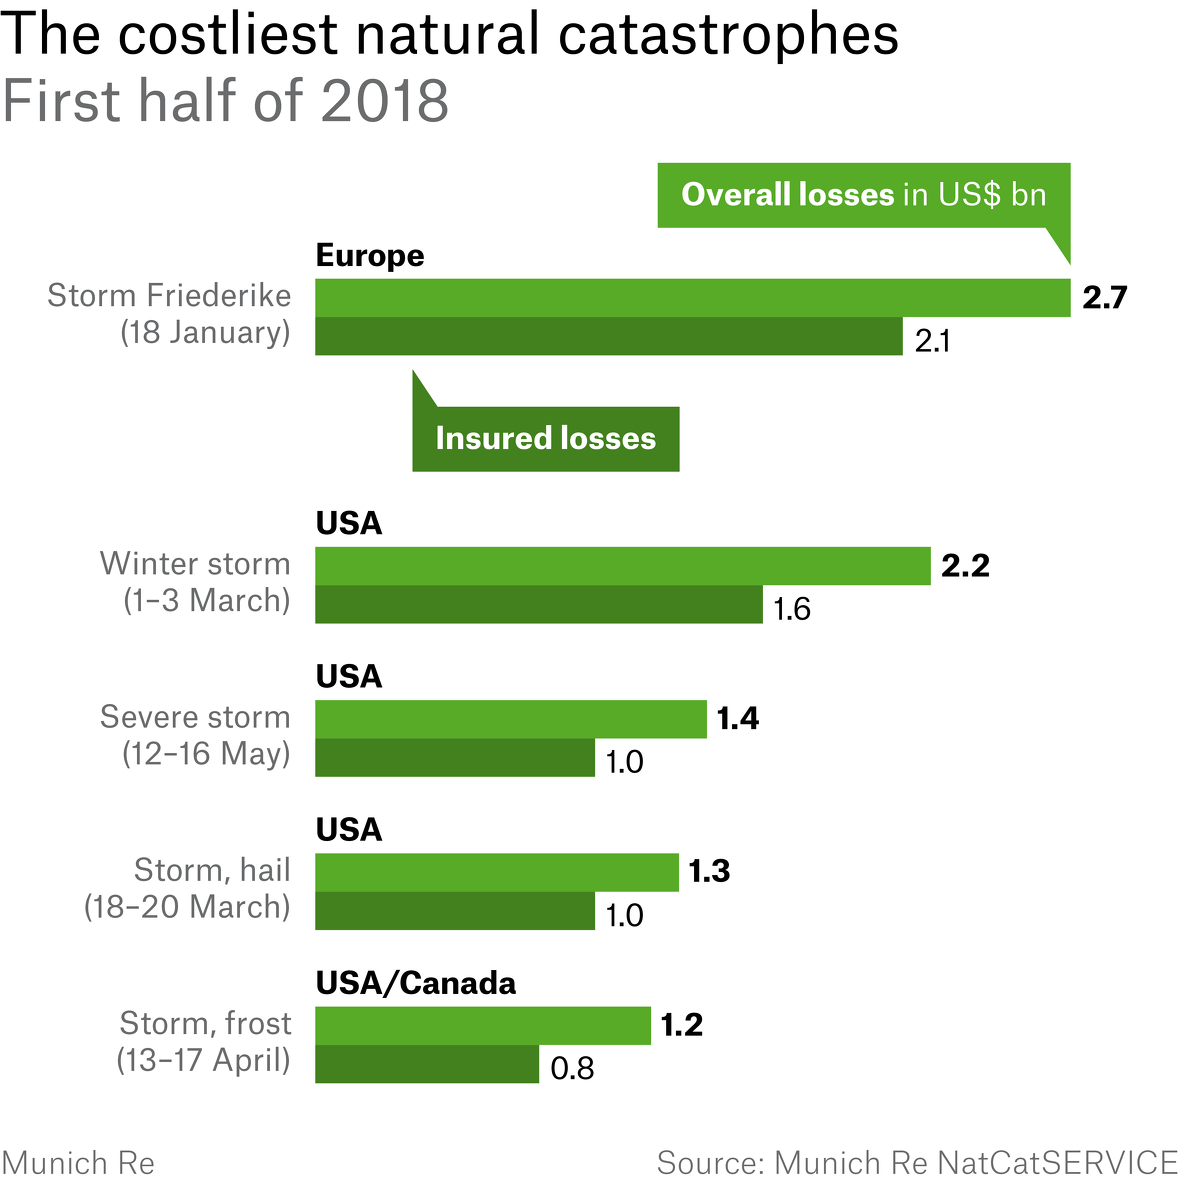 Winter Storm Friederike in Europe was the costliest natural catastrophe in the first half of 2018